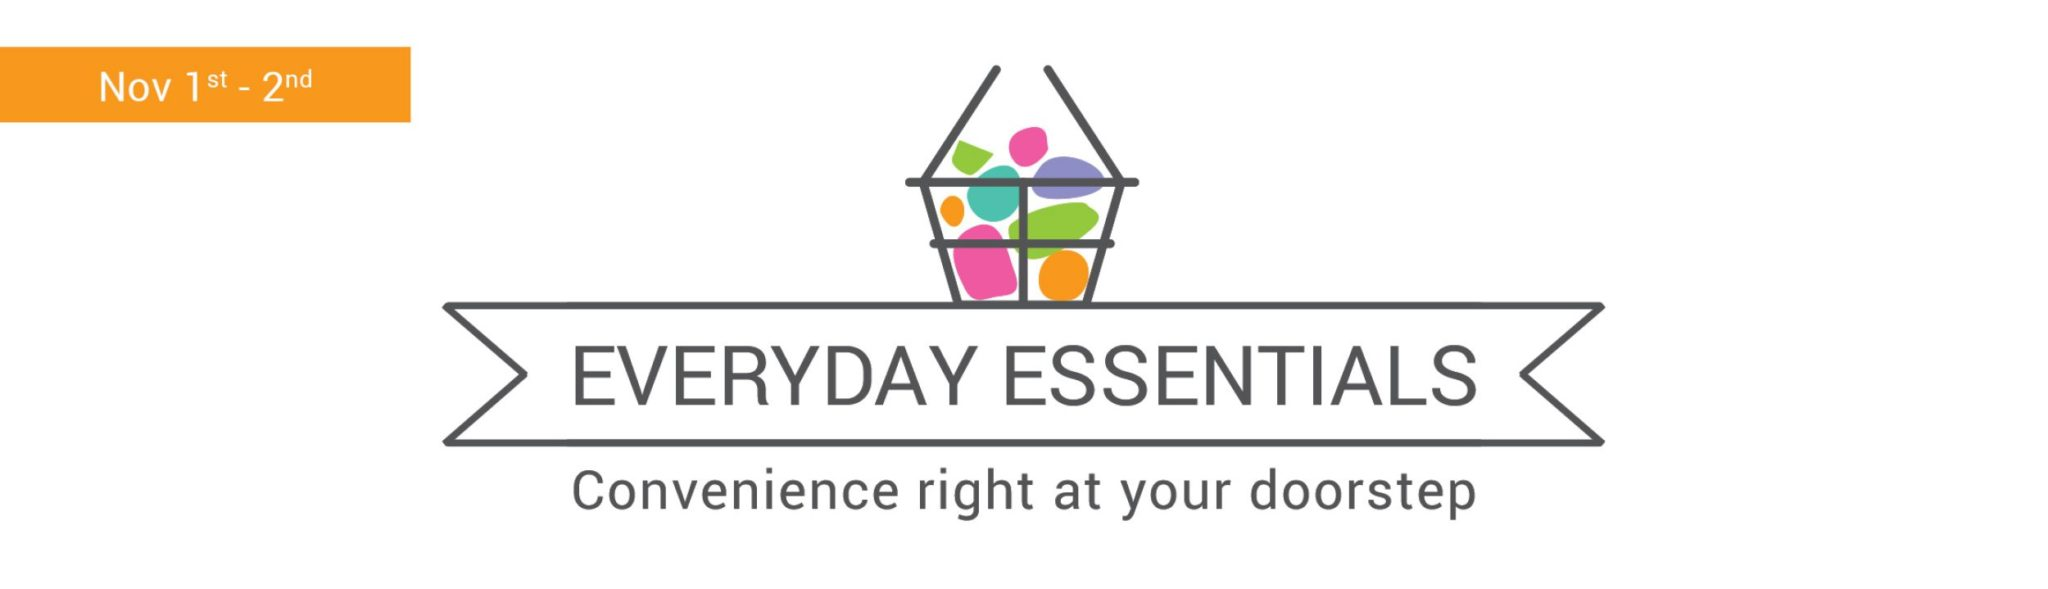 flipkart_everyday_essentials_01nov